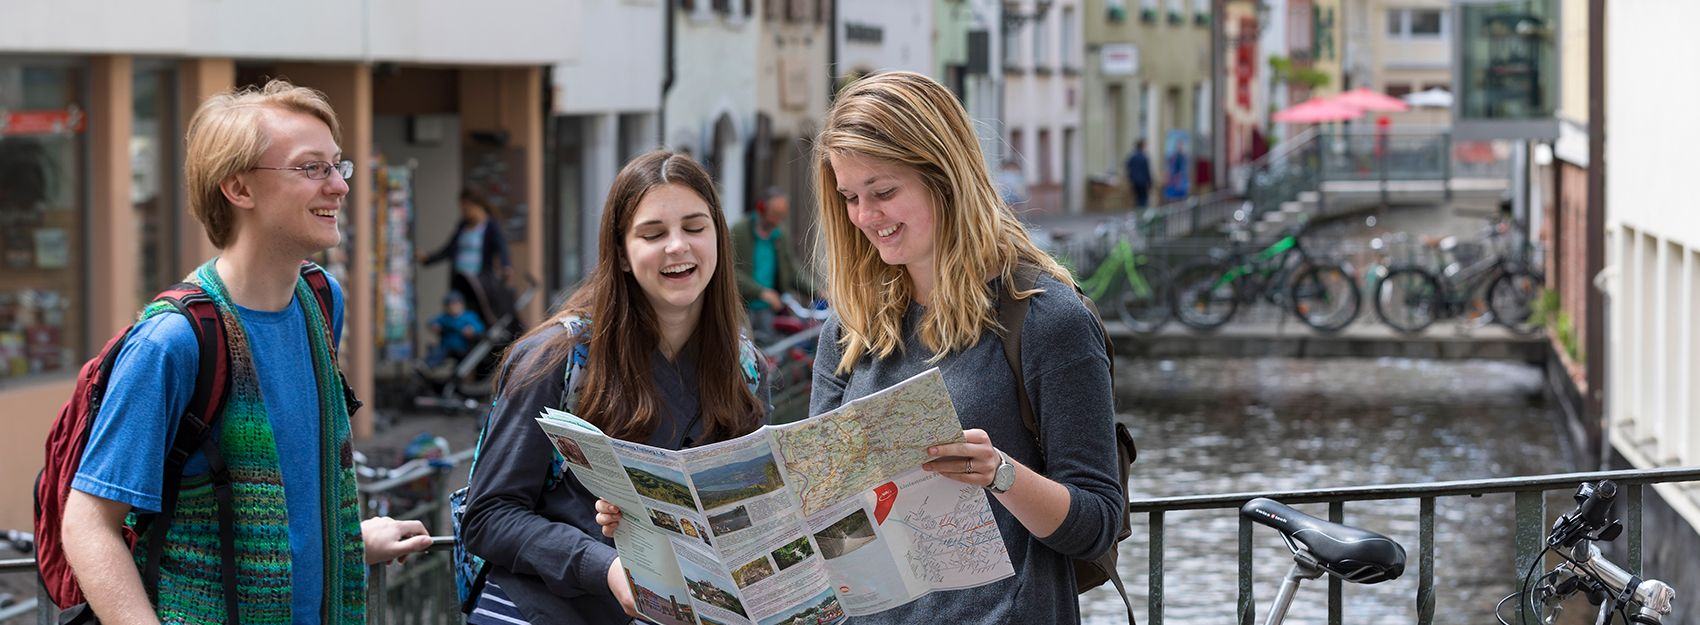 Freiburg study abroad students look at a map